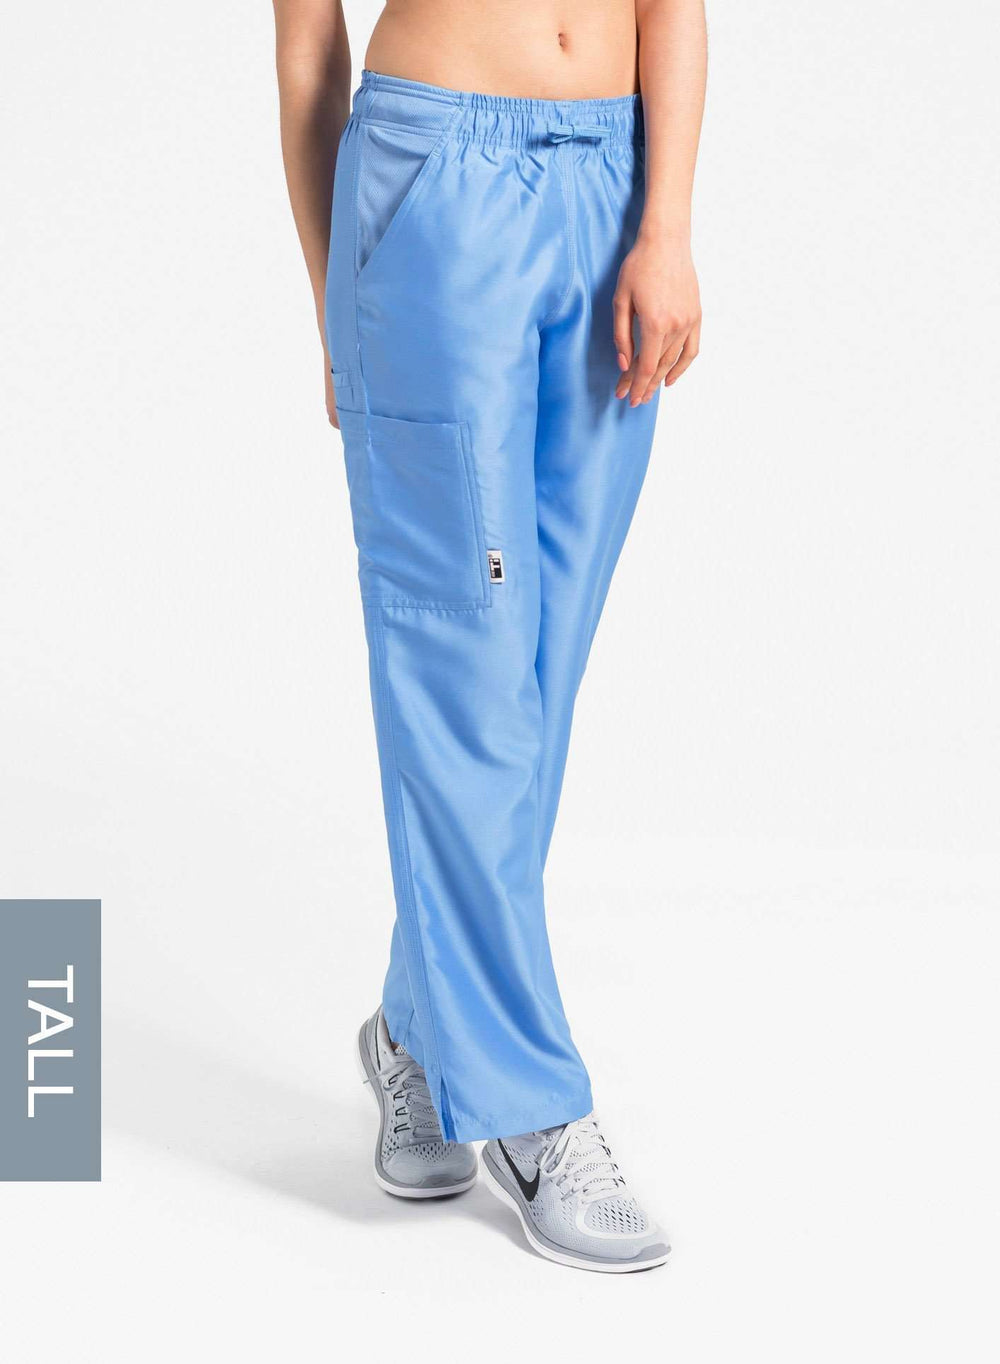 Women's Straight Leg Scrub Pants | Tall